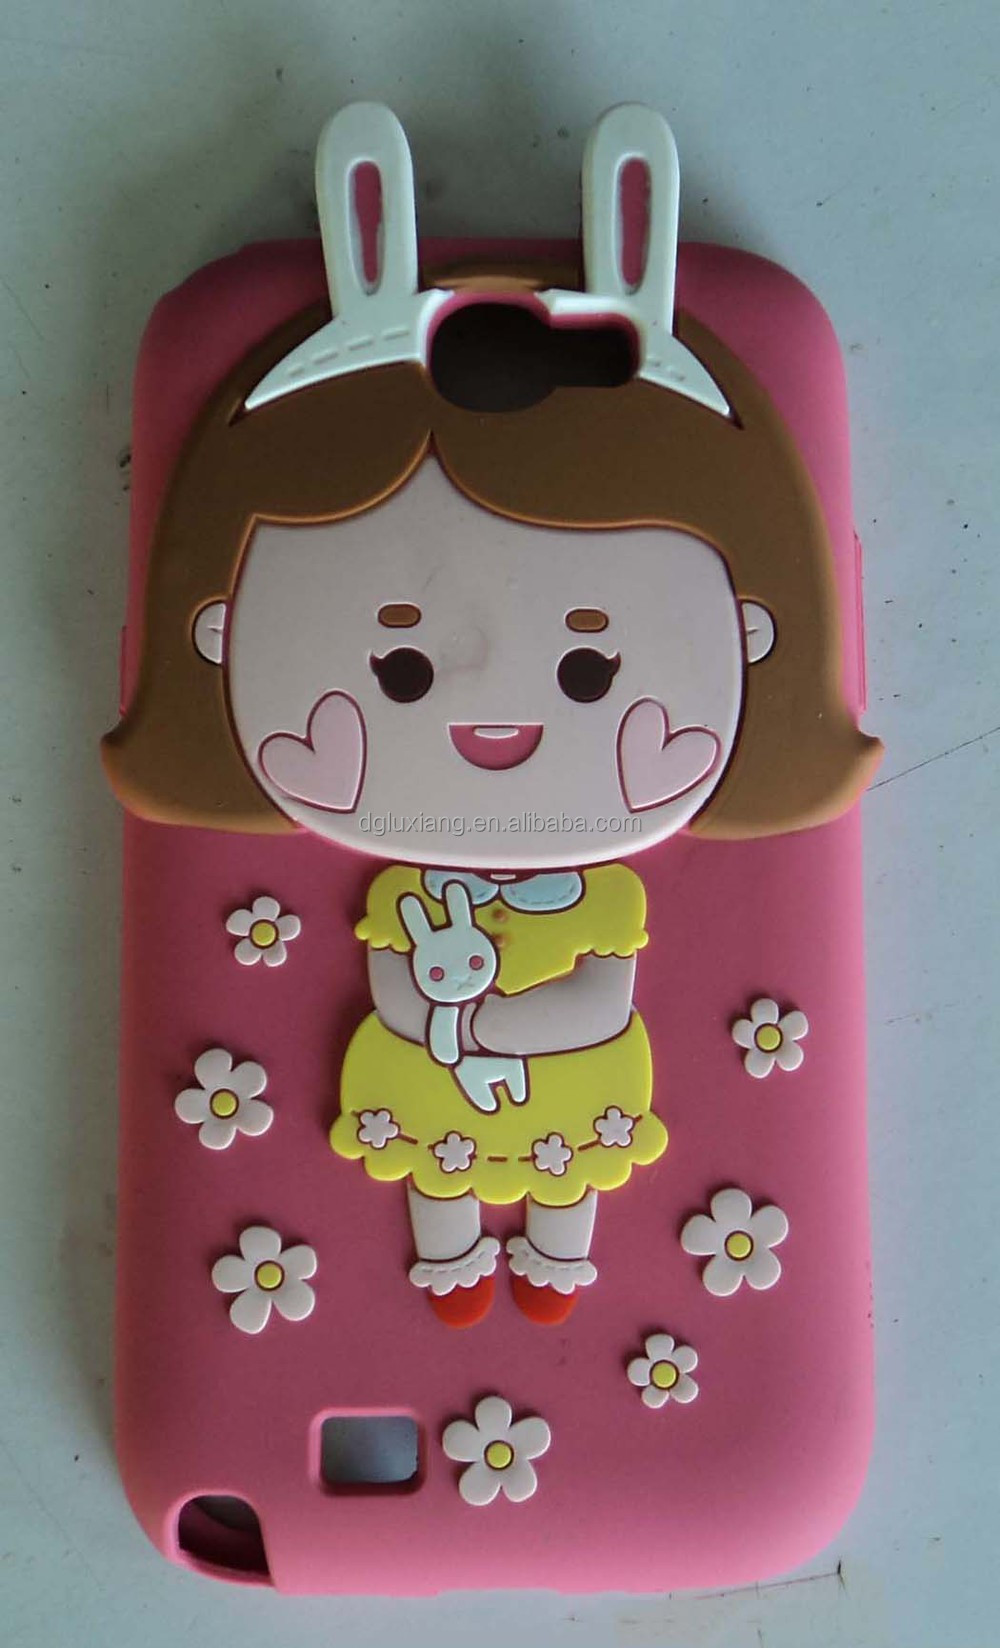 Cute girl modelling silicone mobile phone case